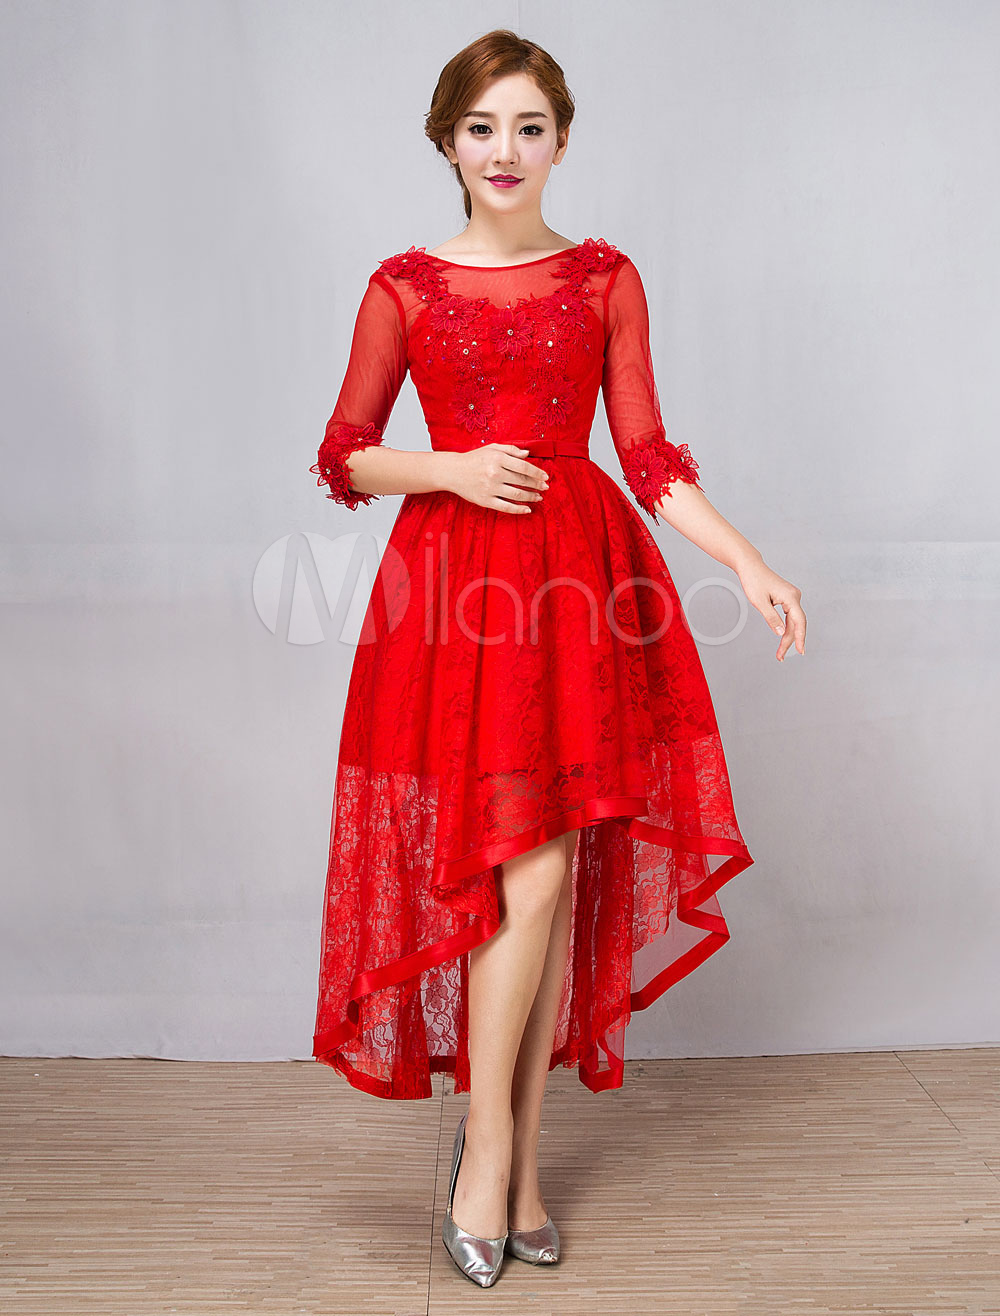 Red Cocktail Dresses Lace Half Sleeve Asymmetrical Beaded Bow Sash Short Prom Dresses